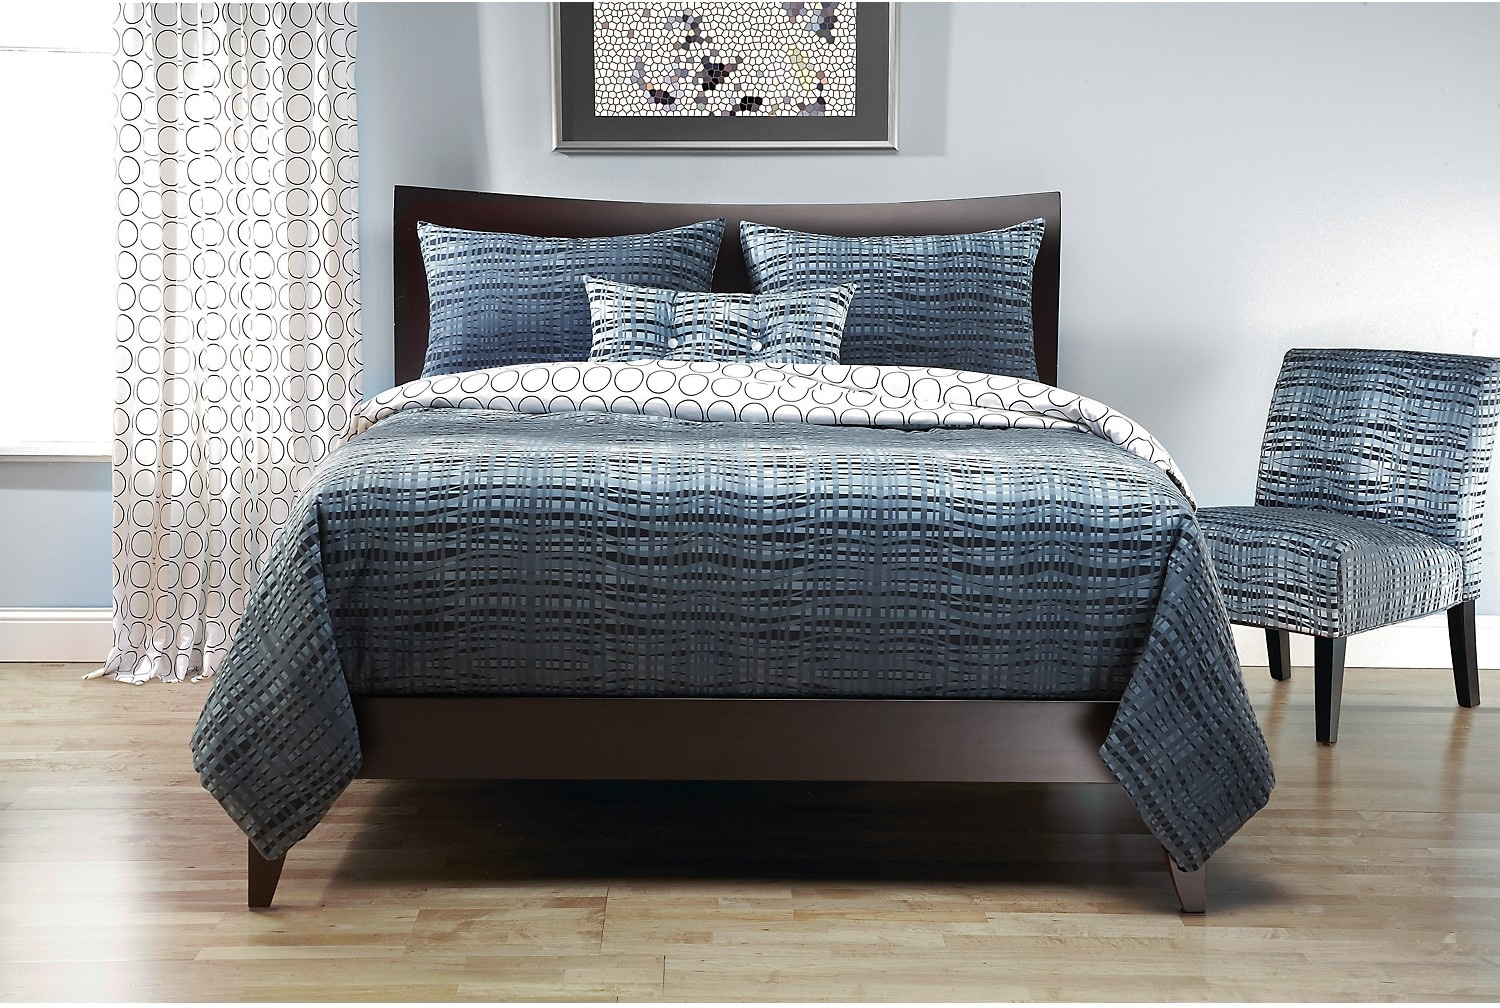 Mattresses and Bedding - Interweave Reversible 4 Piece King Duvet Cover Set